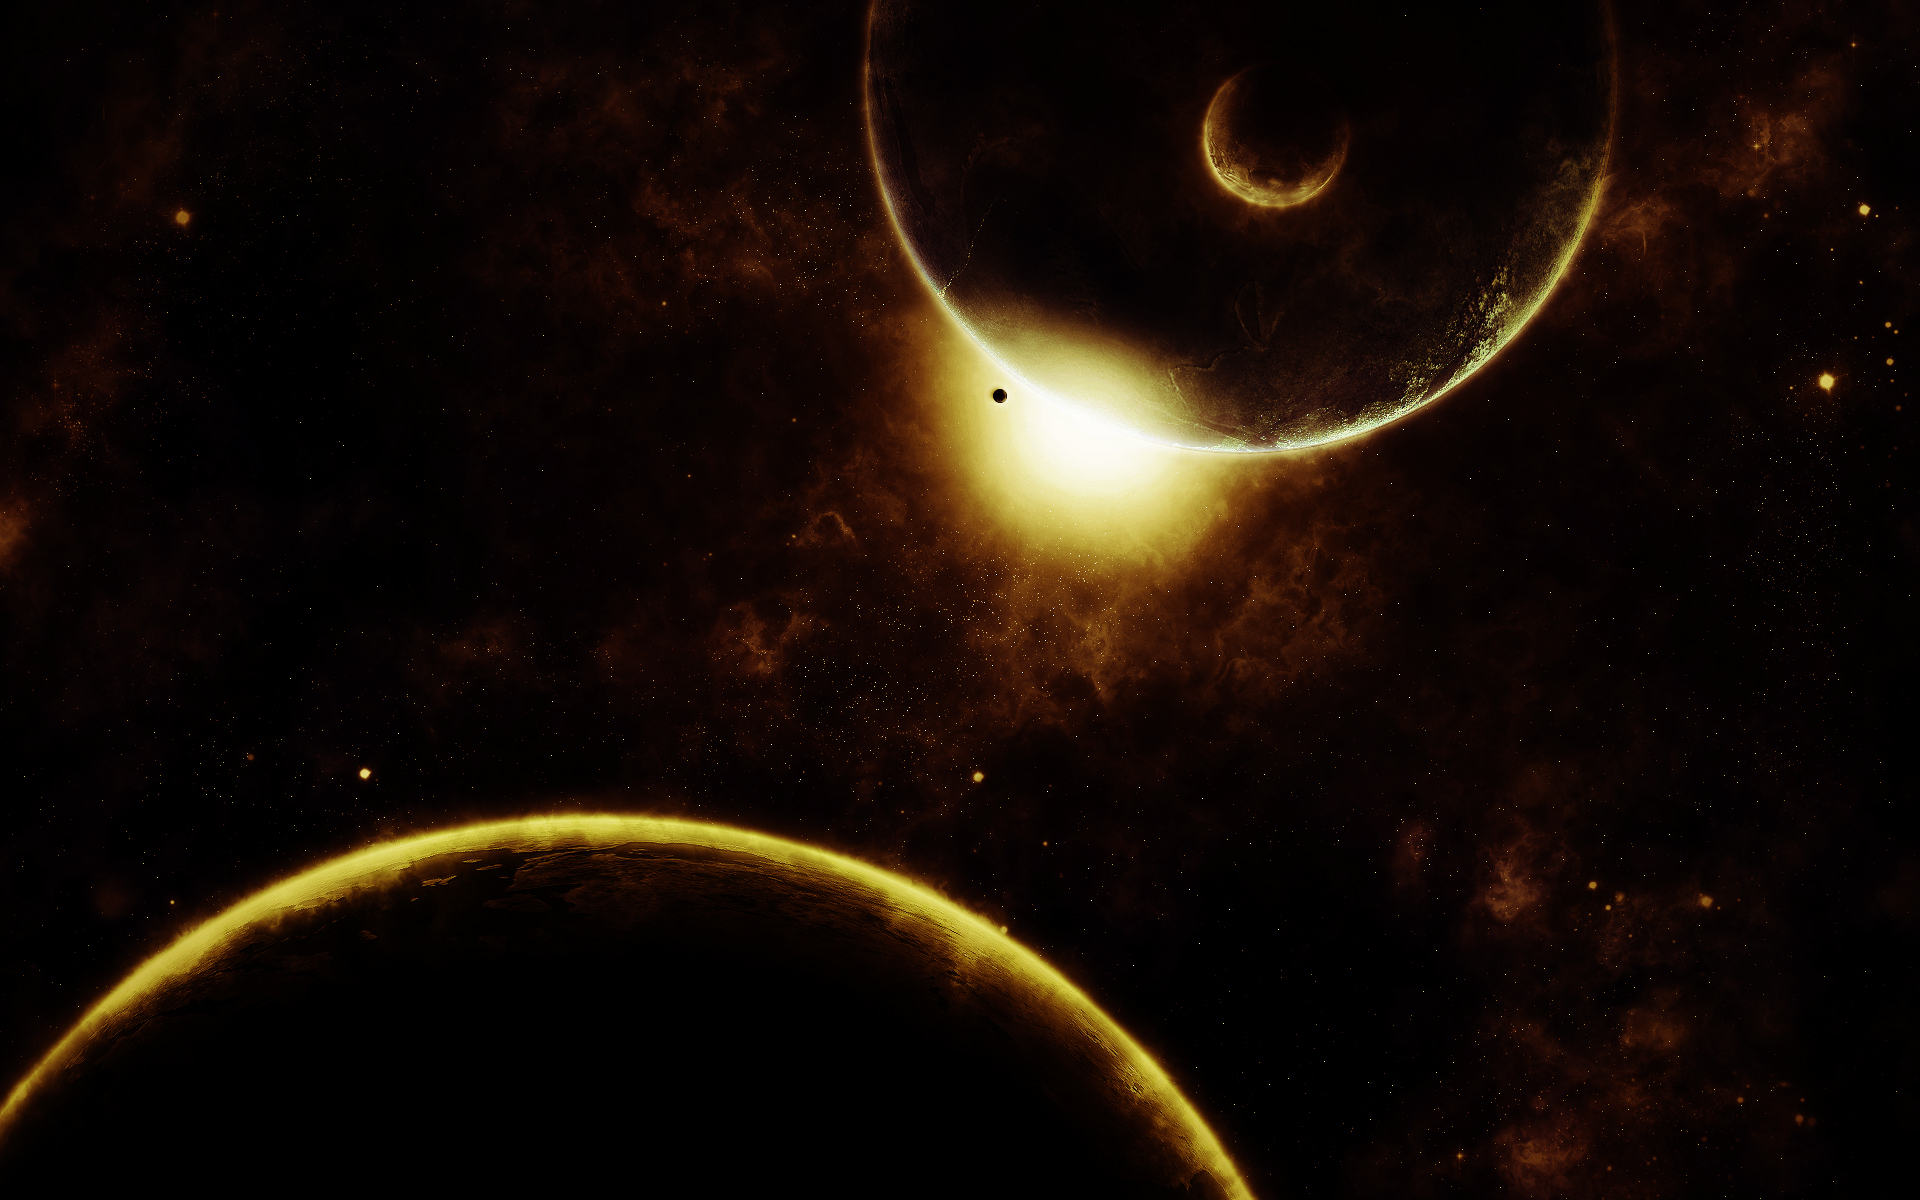 dark space wallpaper smilindeth art 1920x1200